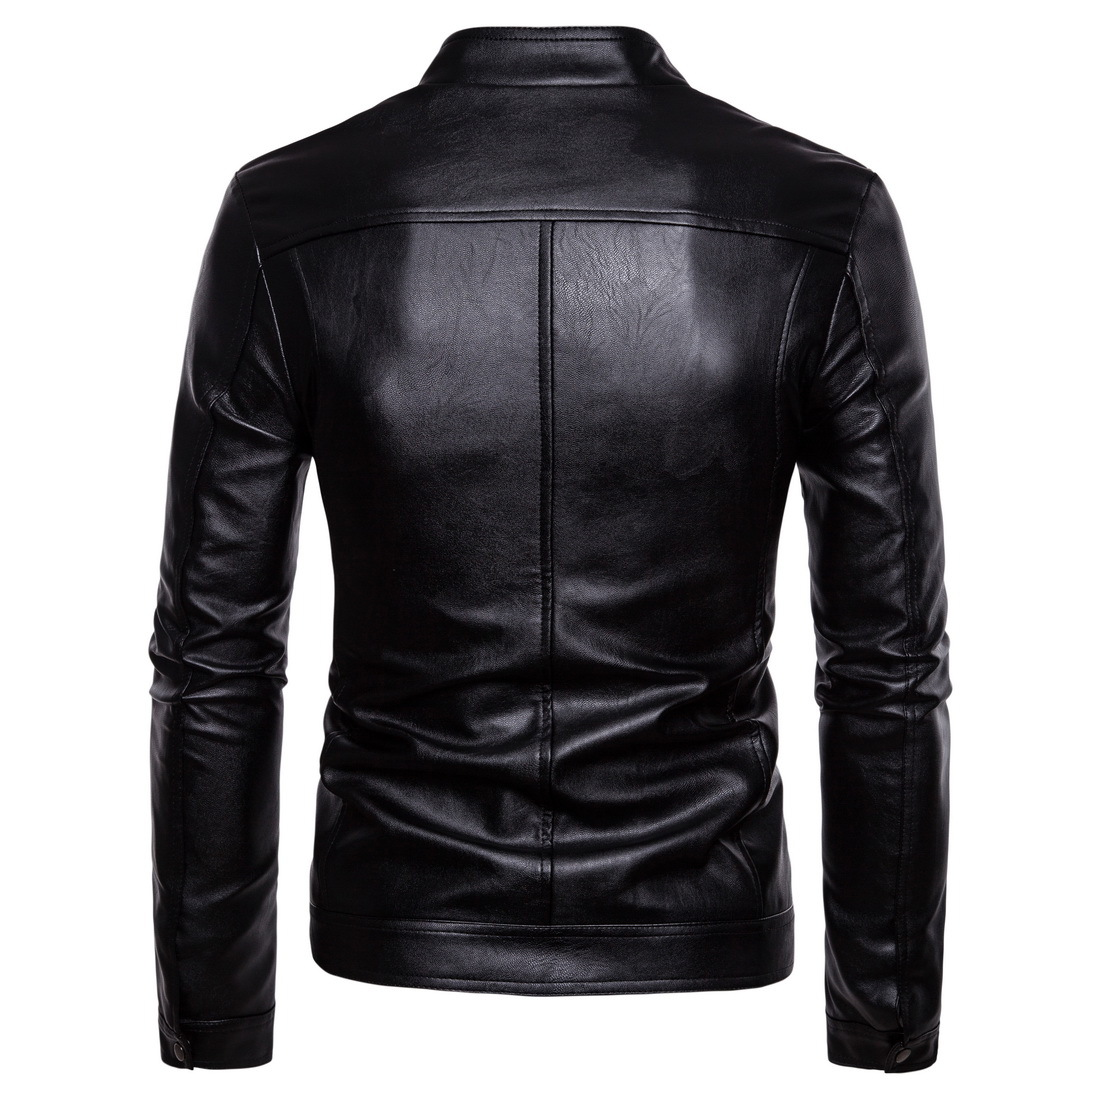 Leather Jacket Men 2018 Autumn Winter New Style Fashion Black Stand Collar Male Casual Motorcycle PU Leather Jacket Coat 5XL in Faux Leather Coats from Men 39 s Clothing